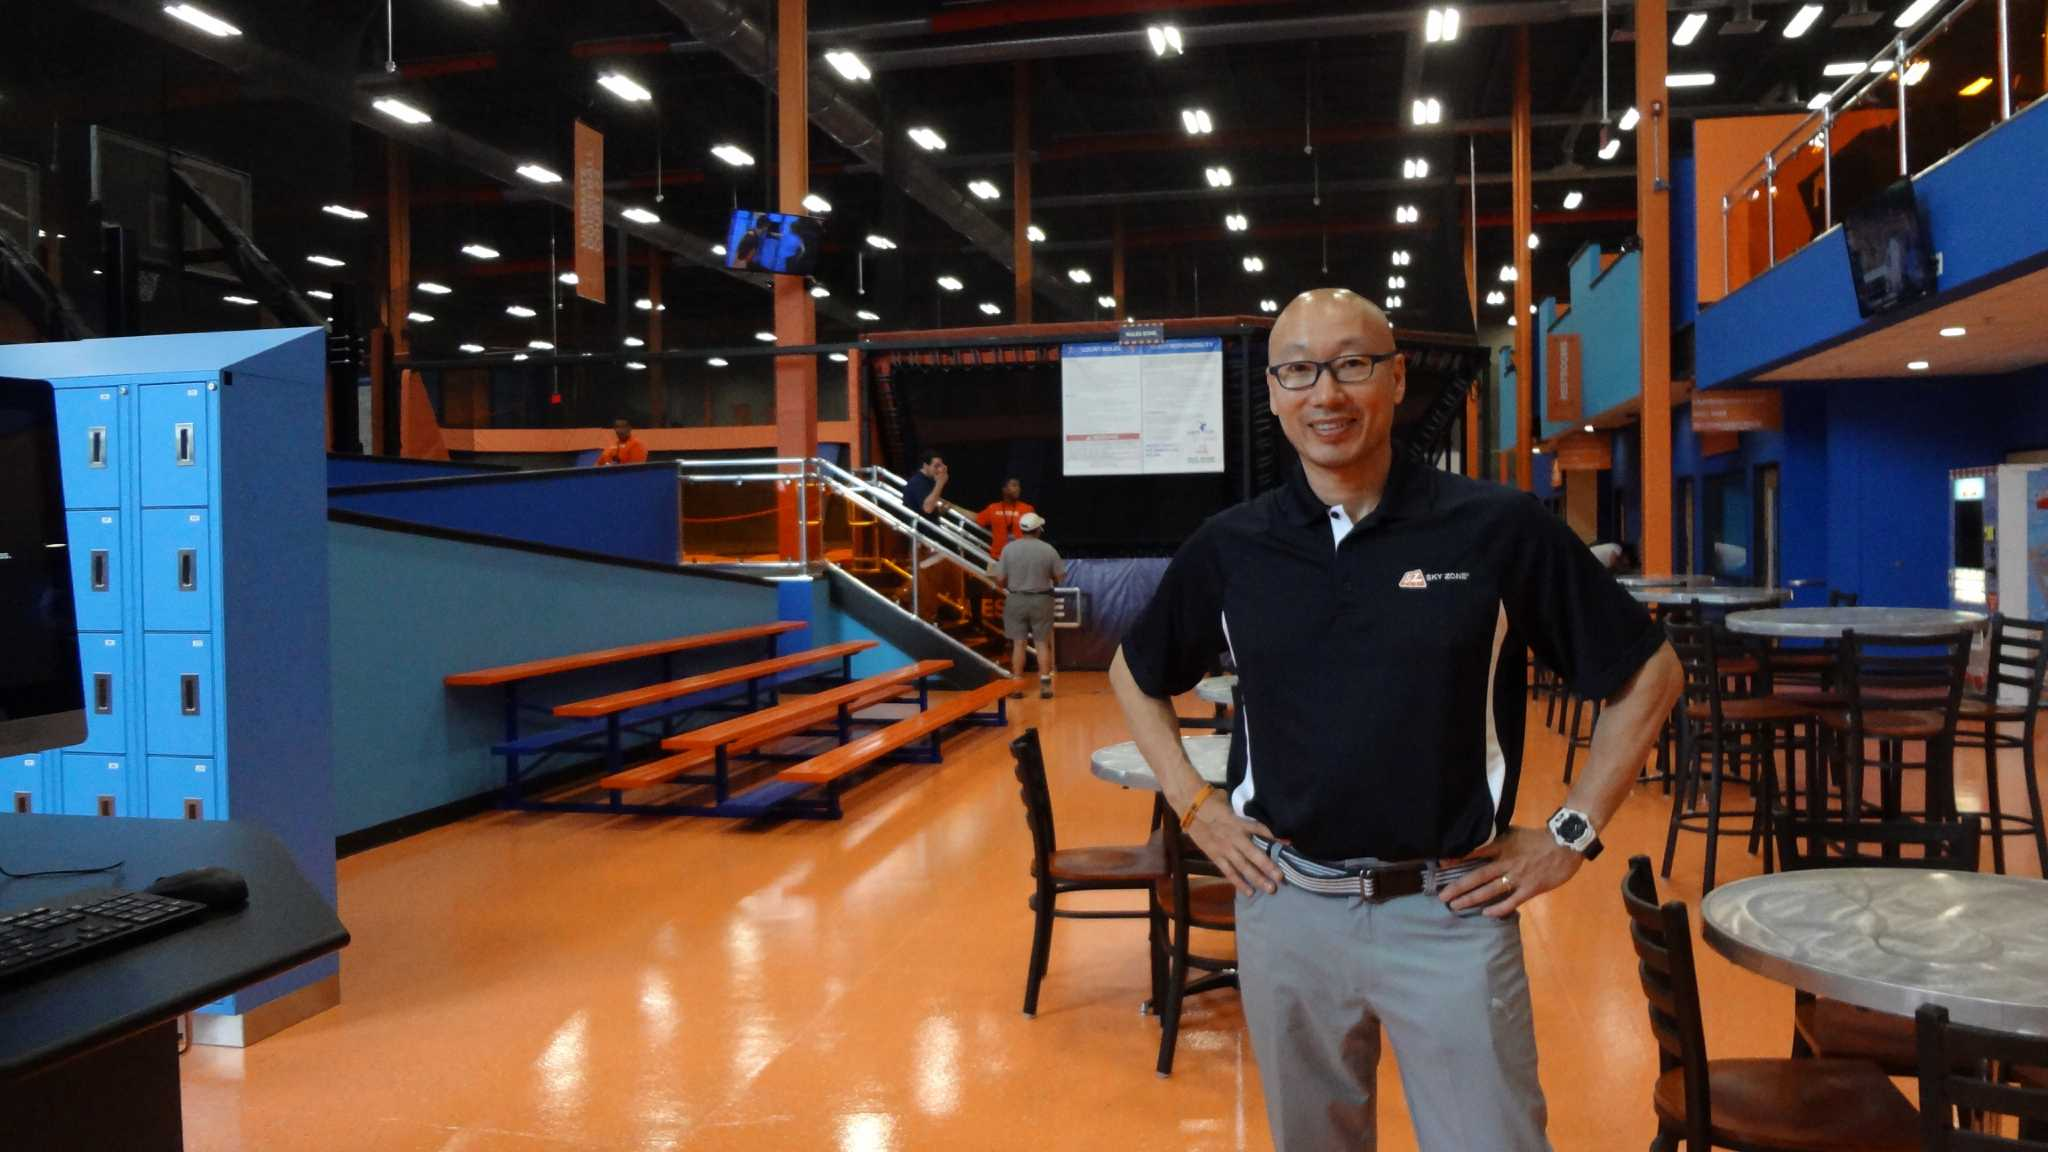 Trampoline parks popularity keeps growing connecticut post for Swanson s fish market